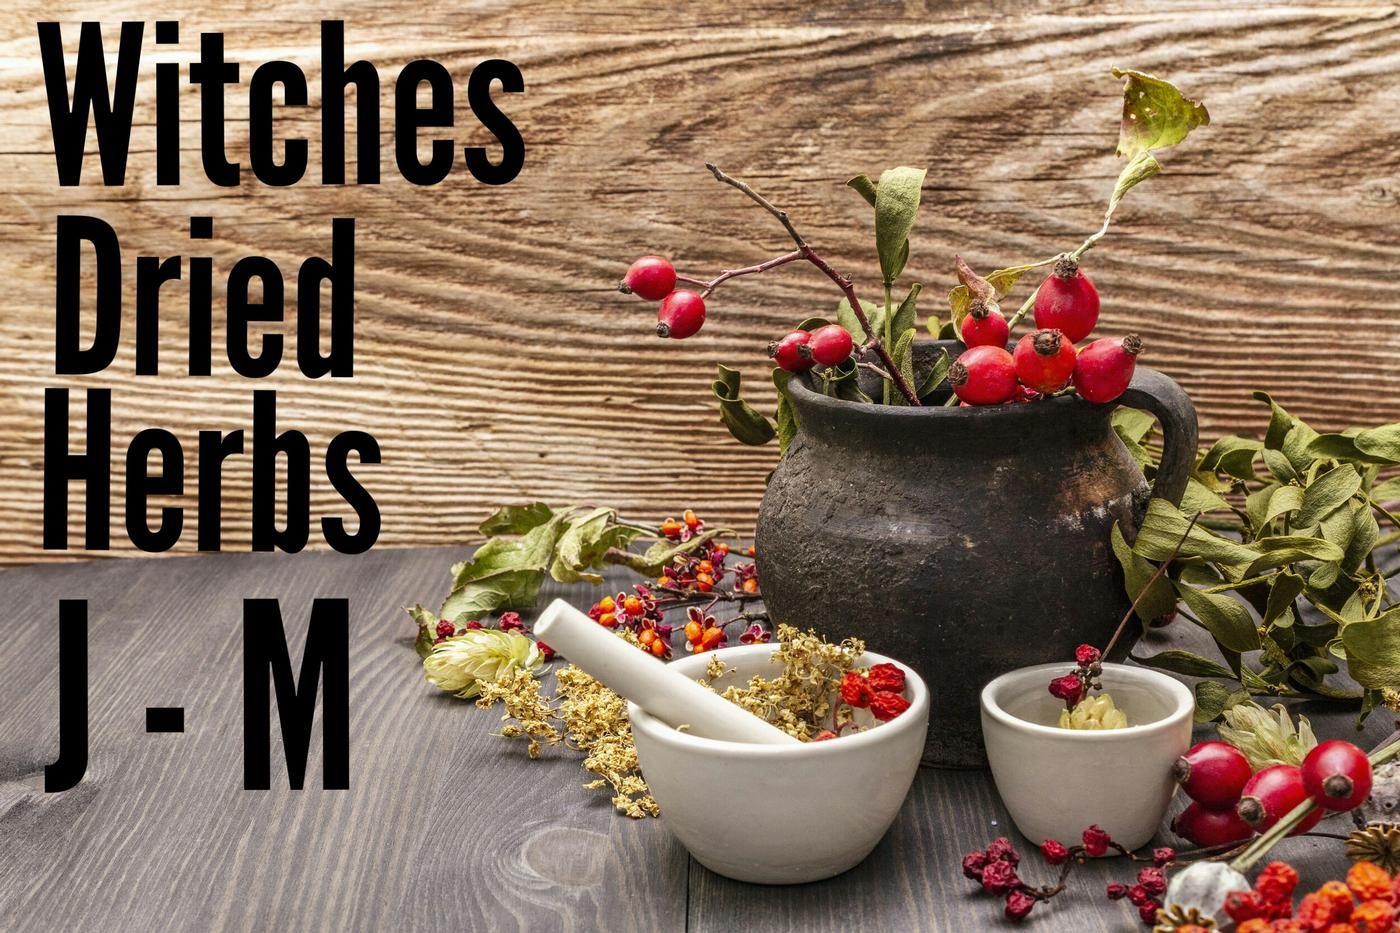 Witches Dried Herbs   J - M